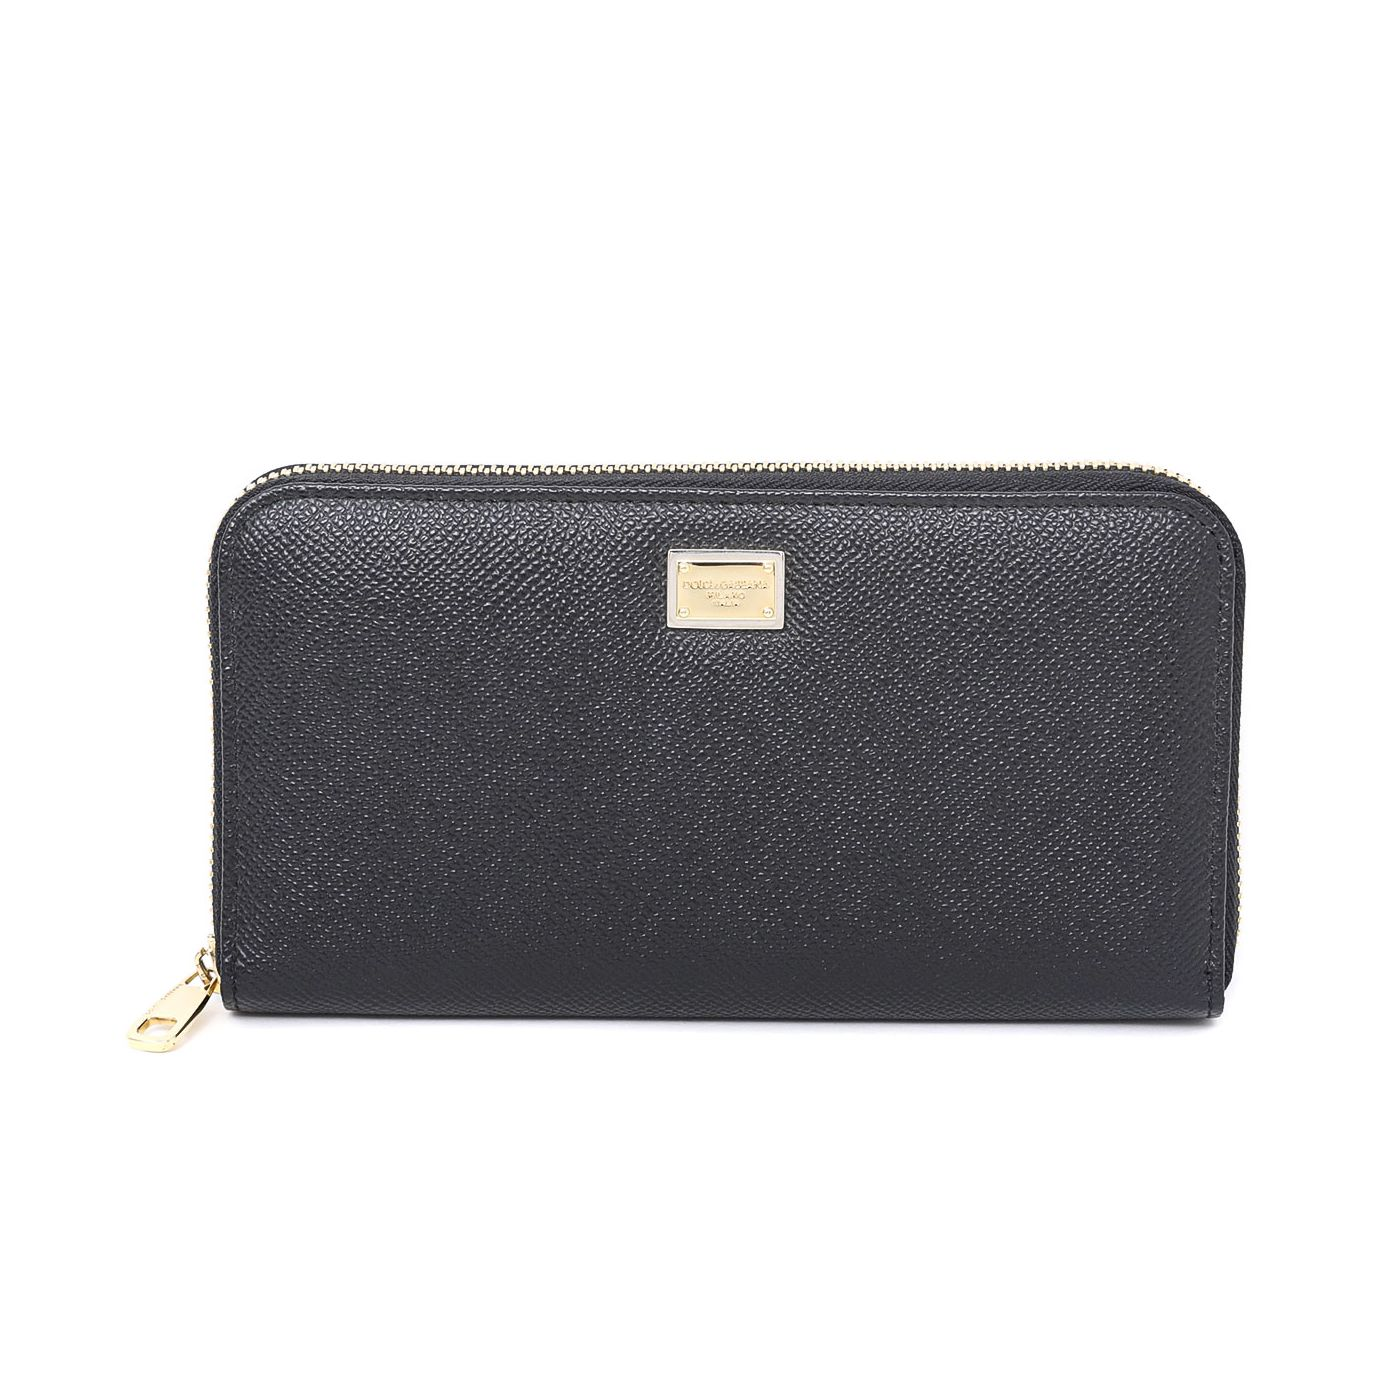 Dolce & Gabbana Black Zip Around Wallet